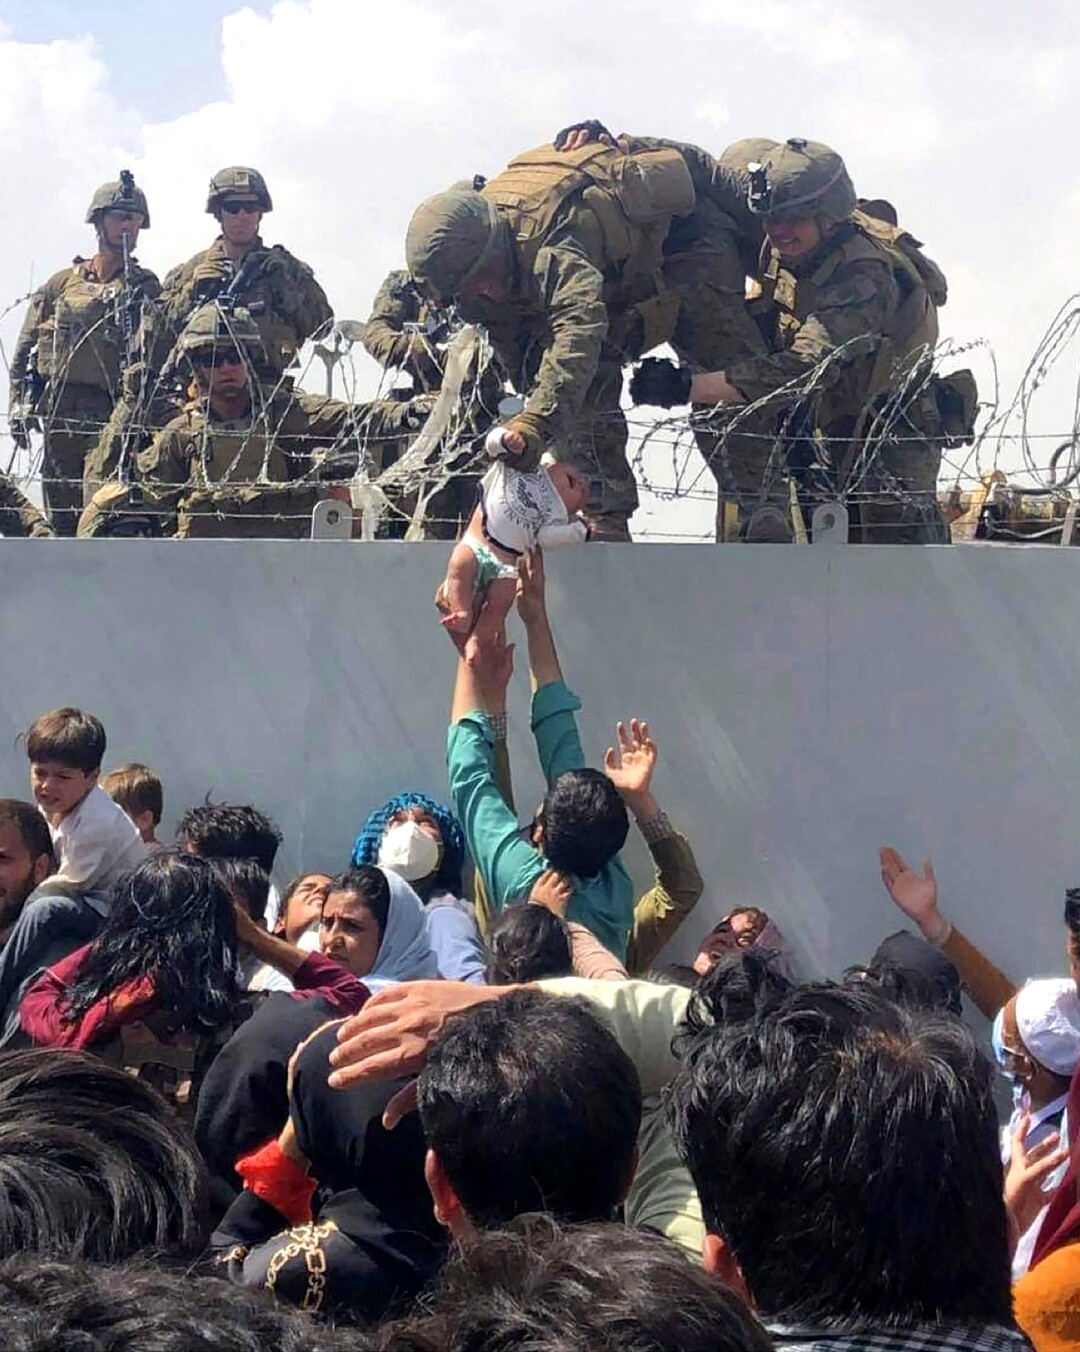 A U.S. Marine grabs an infant over a fence of barbed wire during an evacuation at Hamid Karzai International Airport